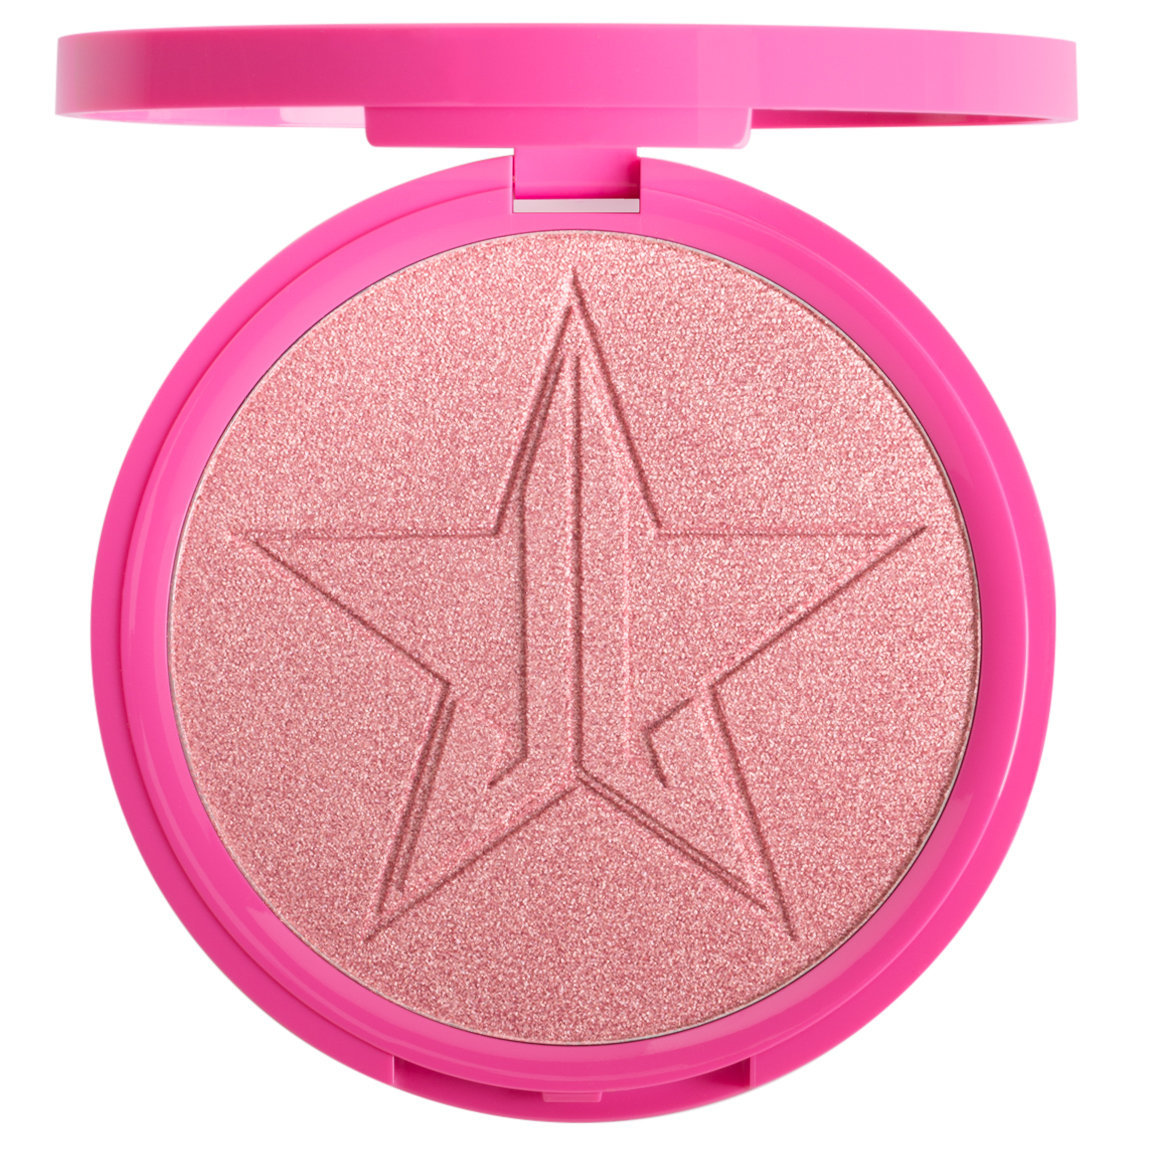 Jeffree Star Cosmetics Skin Frost Peach Goddess product smear.